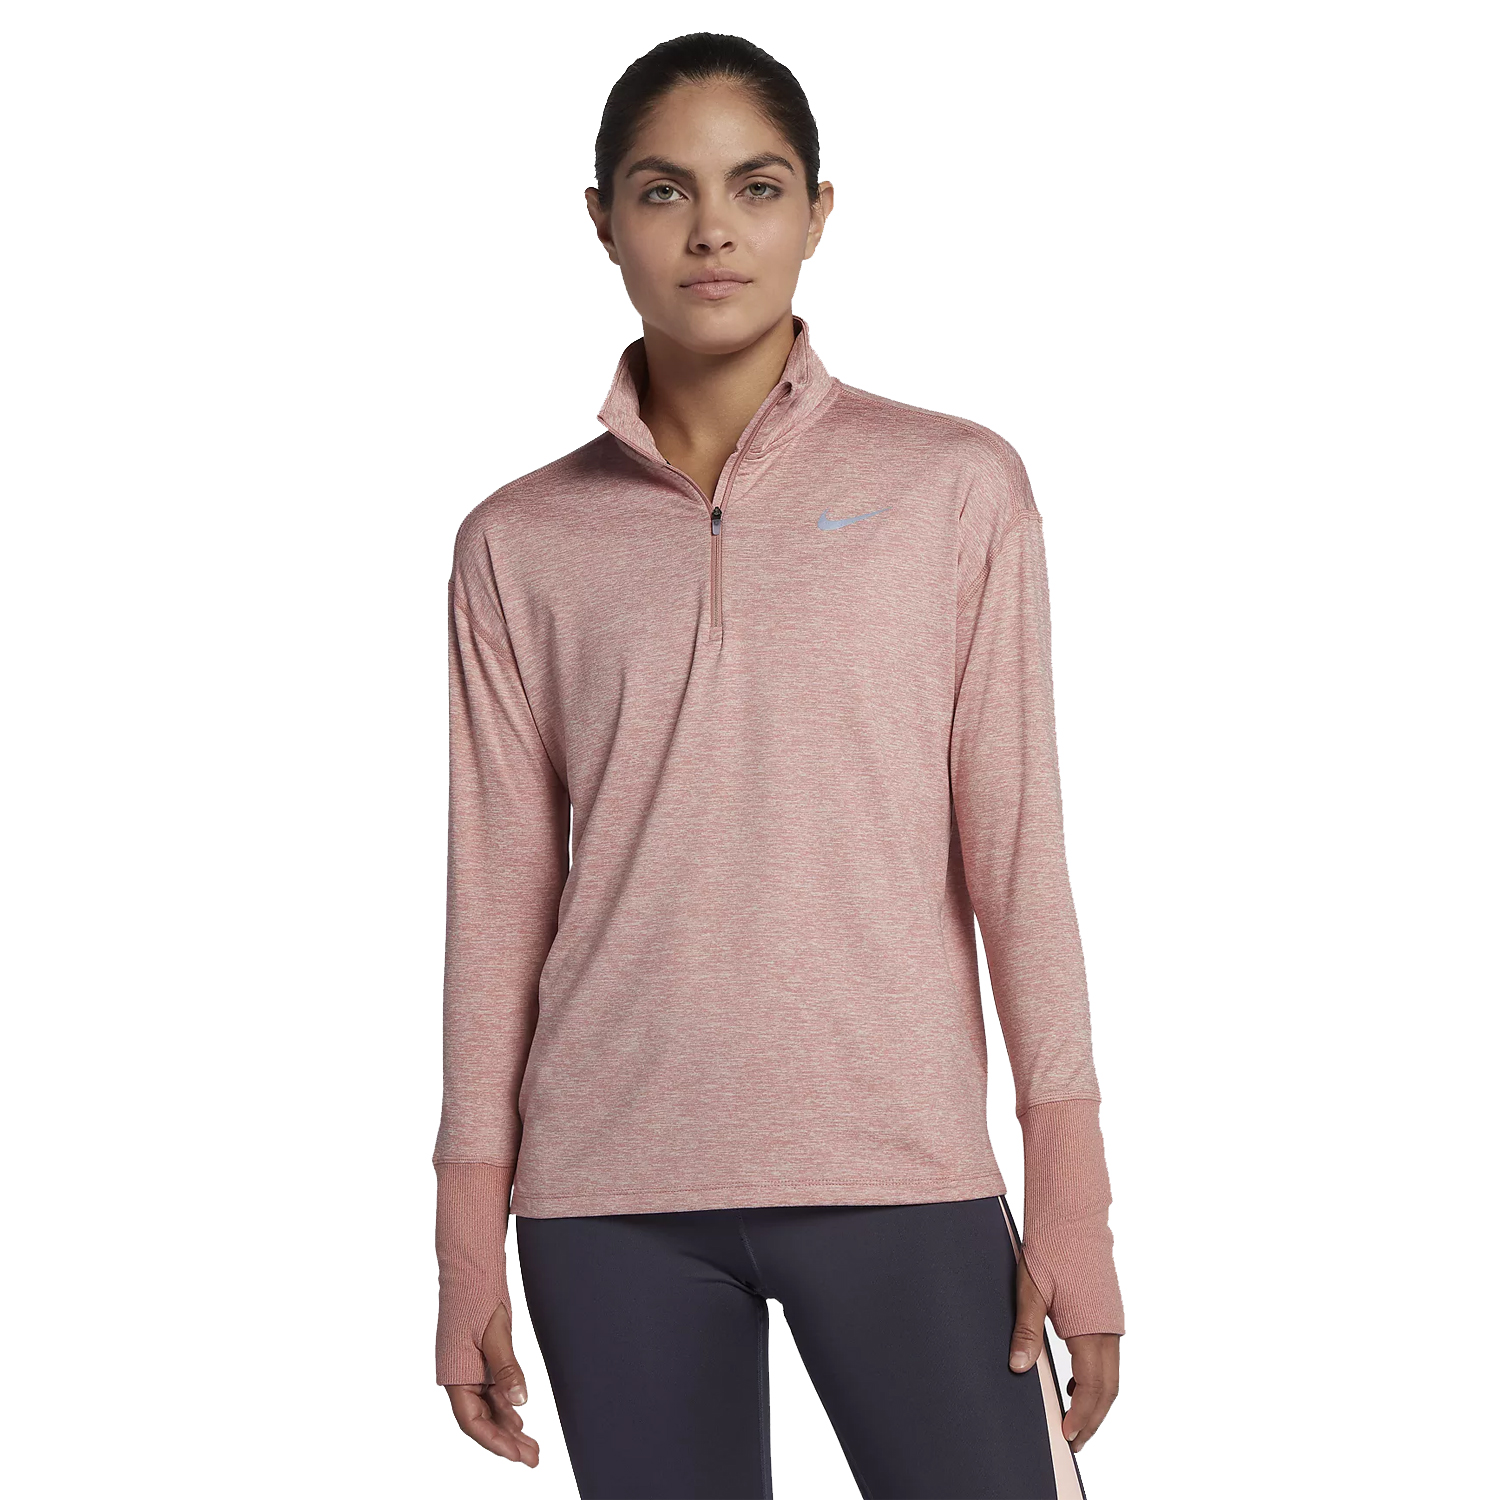 Nike Women s Element Half-Zip Running Top- Rust Pink  9514fbaa1597